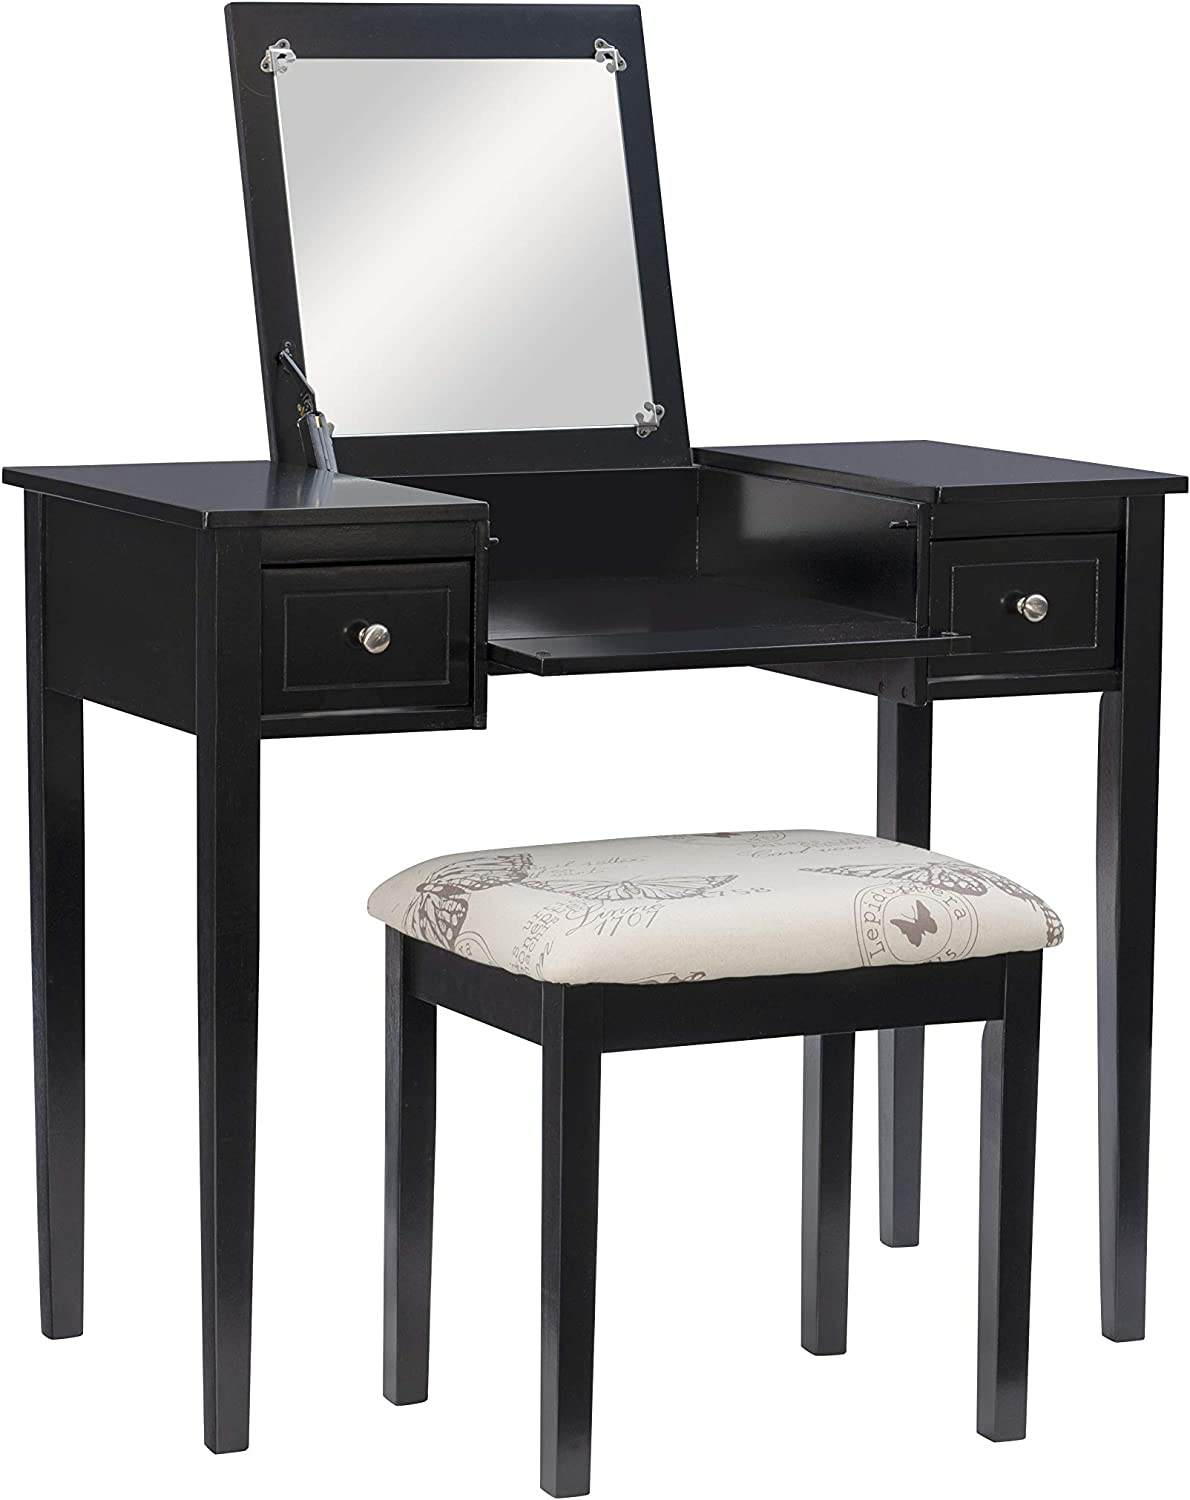 Linon Home Dcor Linon Black Butterfly Stool Vanity Set With Bench 36 W X 18 D X 30 H Furniture Dec Amazon Com